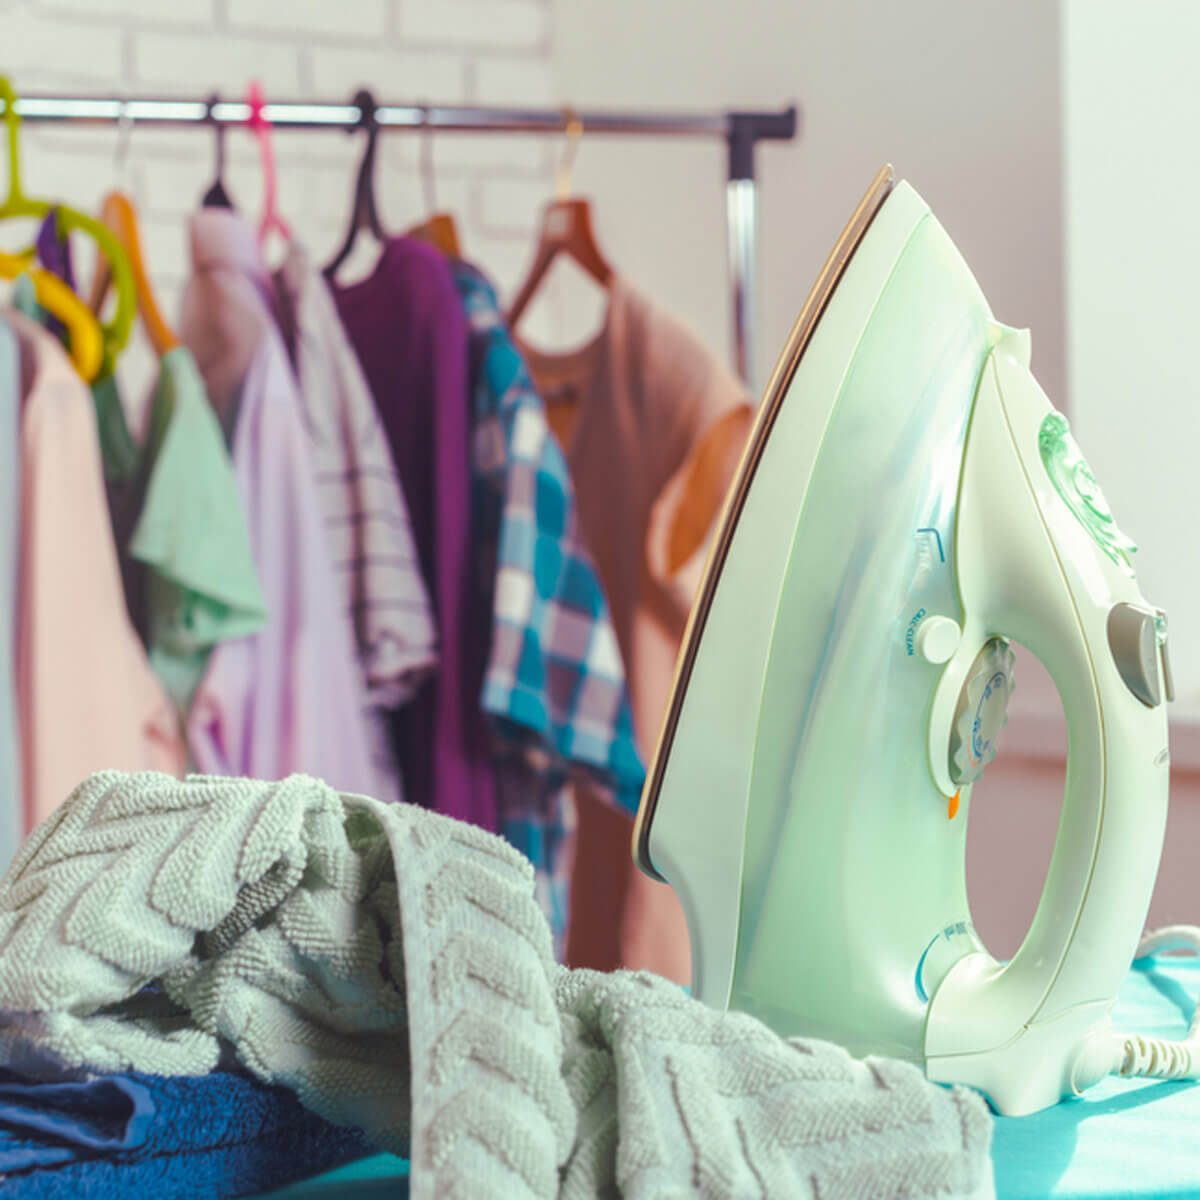 shutterstock_529871035 reduce wrinkles clothes iron